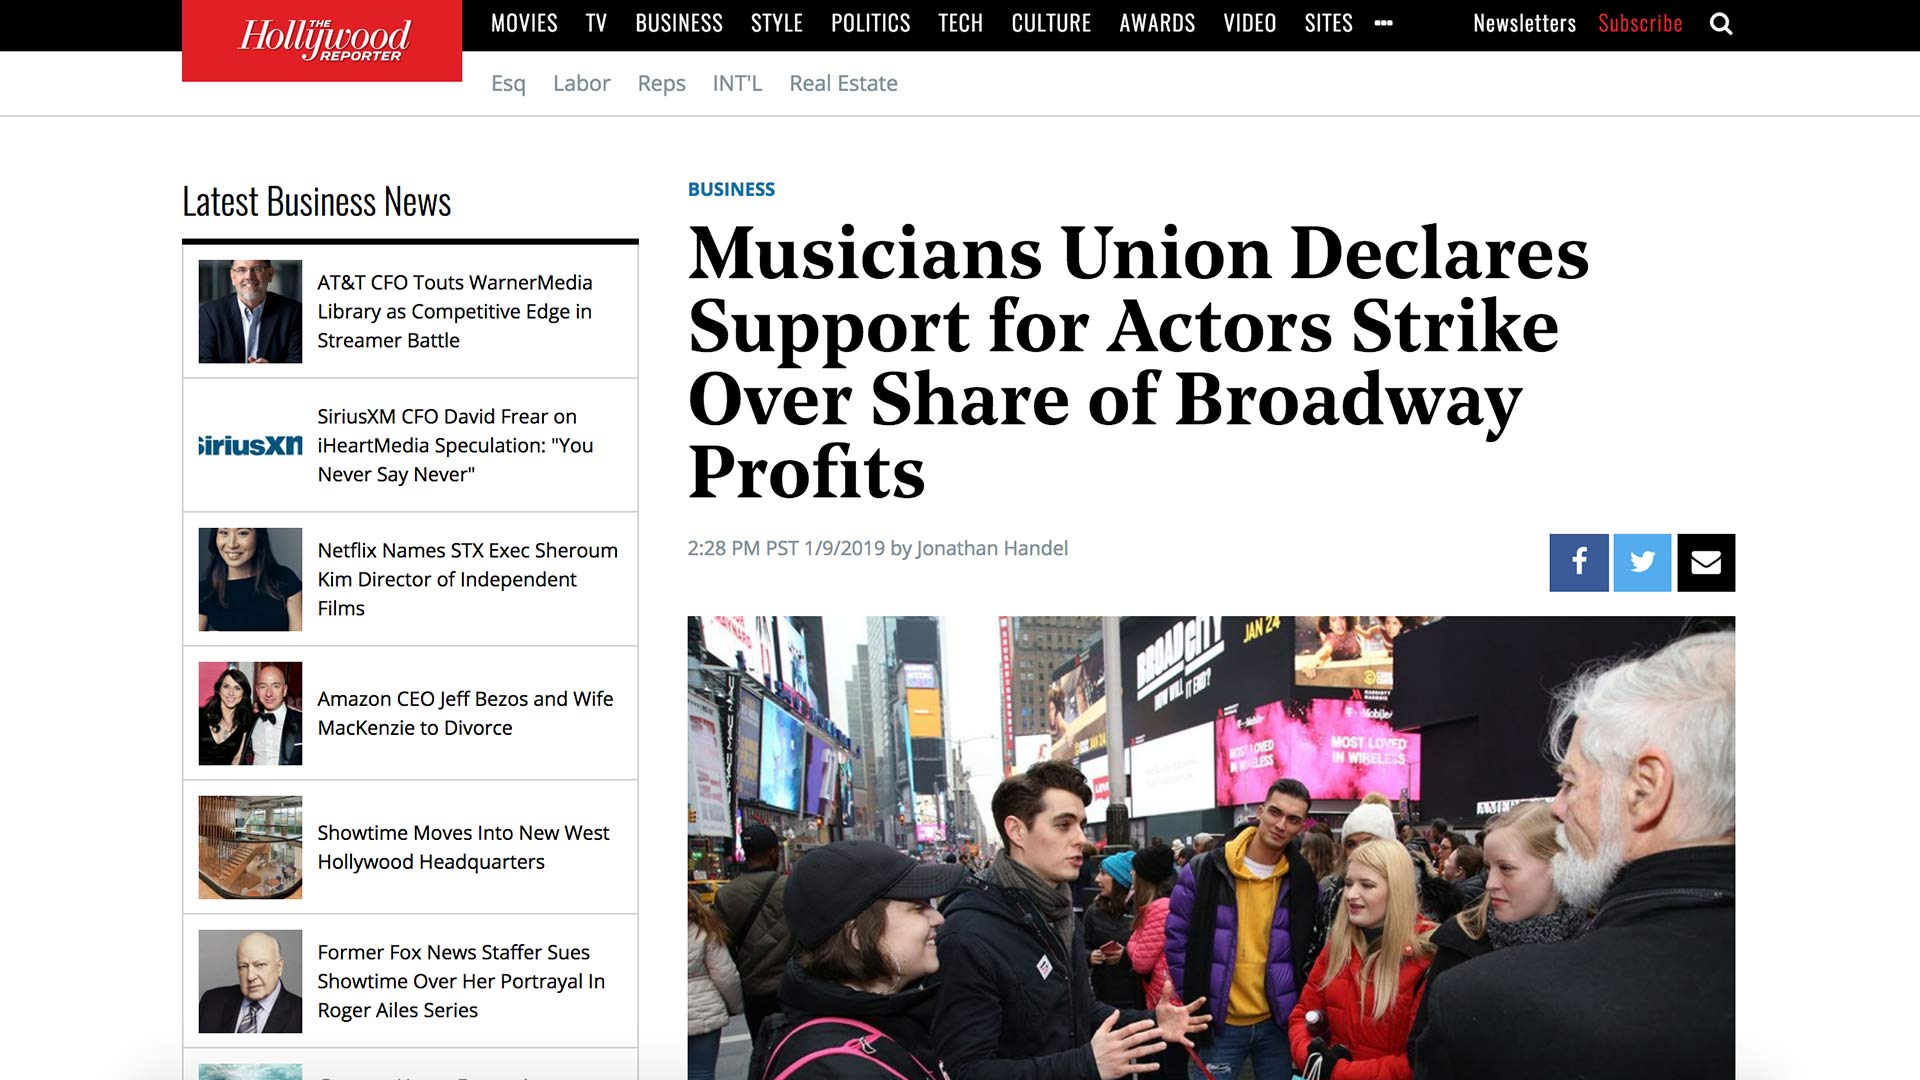 Fairness Rocks News Musicians Union Declares Support for Actors Strike Over Share of Broadway Profits